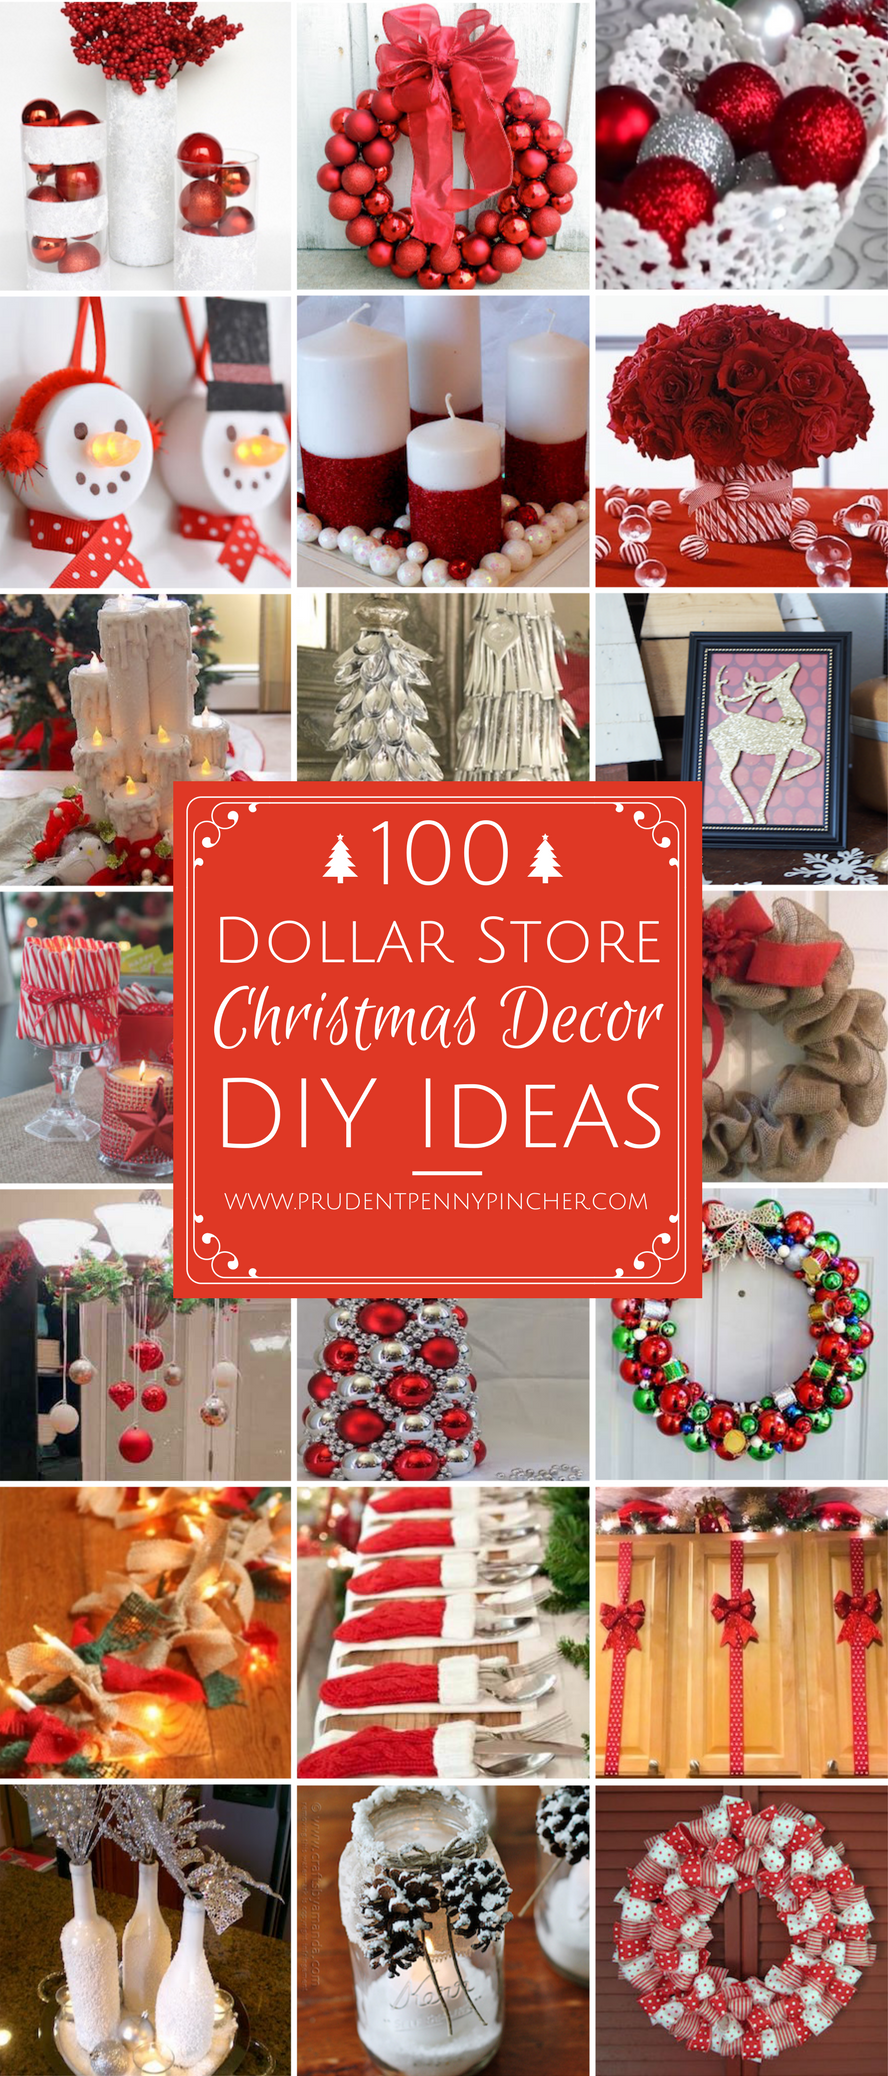 100 dollar store christmas decor diy ideas prudent penny pincher - Dollar store home decor ideas pict ...